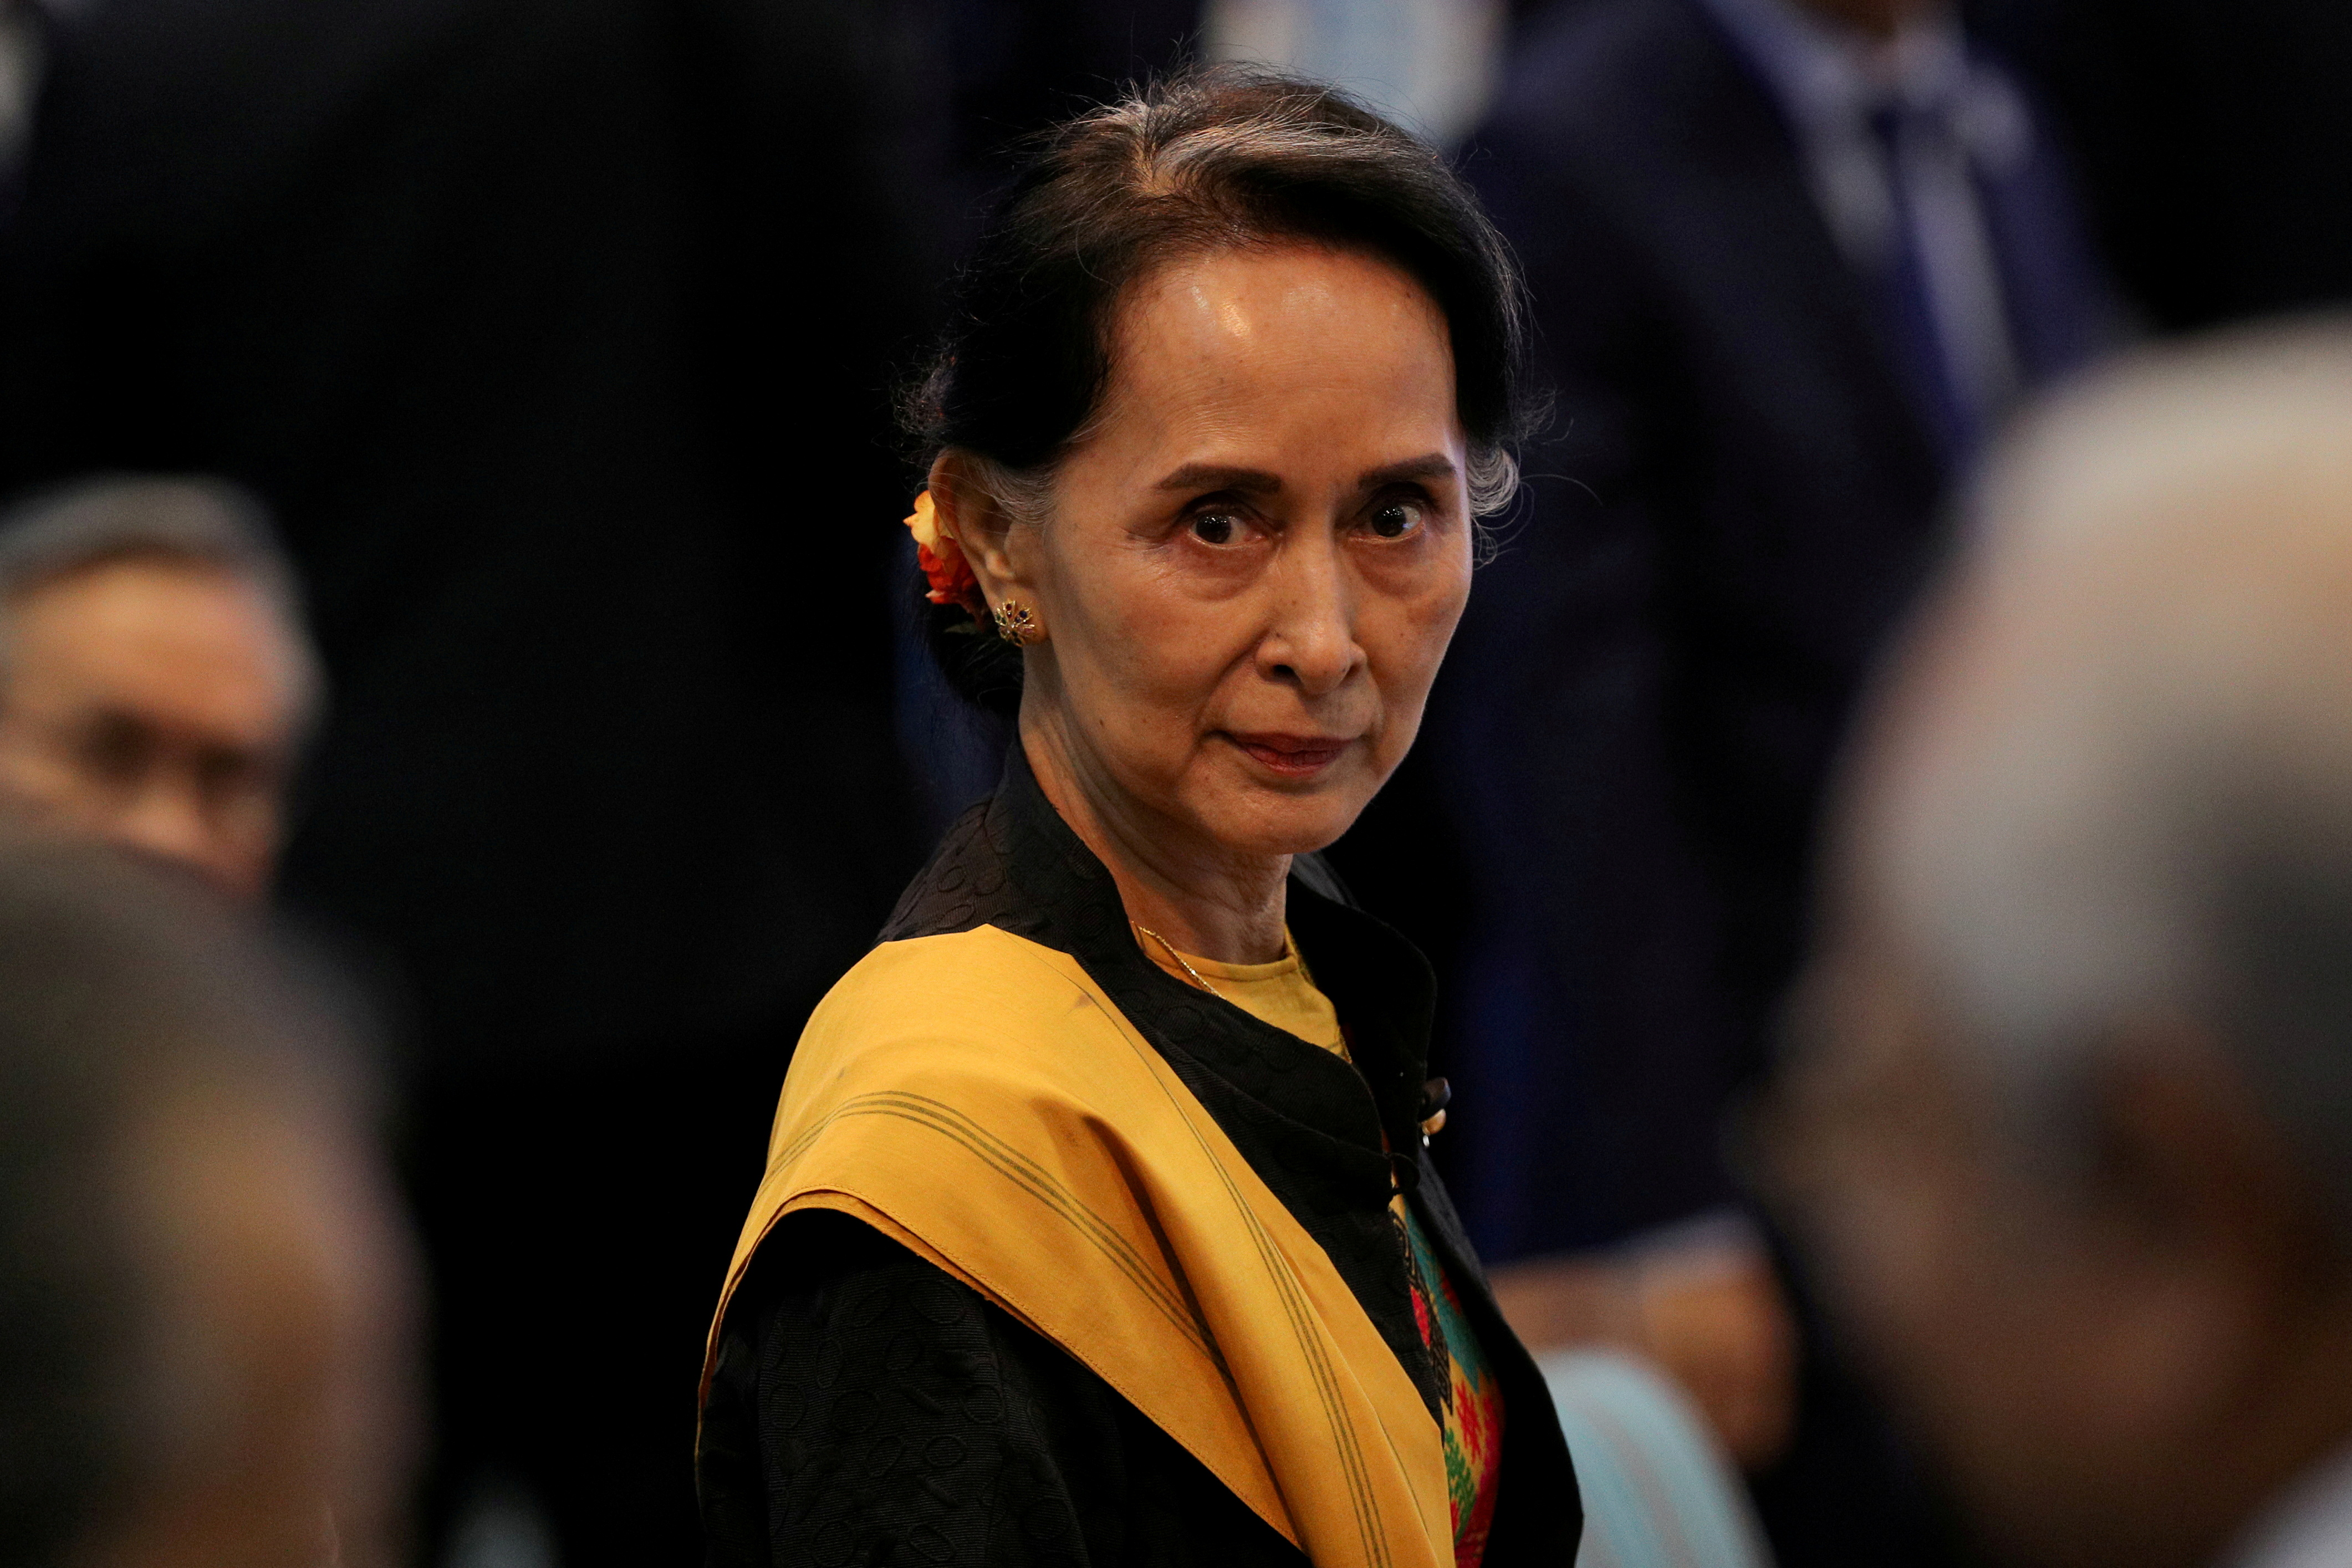 Myanmar State Counselor Aung San Suu Kyi attends the opening session of the 31st ASEAN Summit in Manila, Philippines, November 13, 2017. REUTERS/Athit Perawongmetha